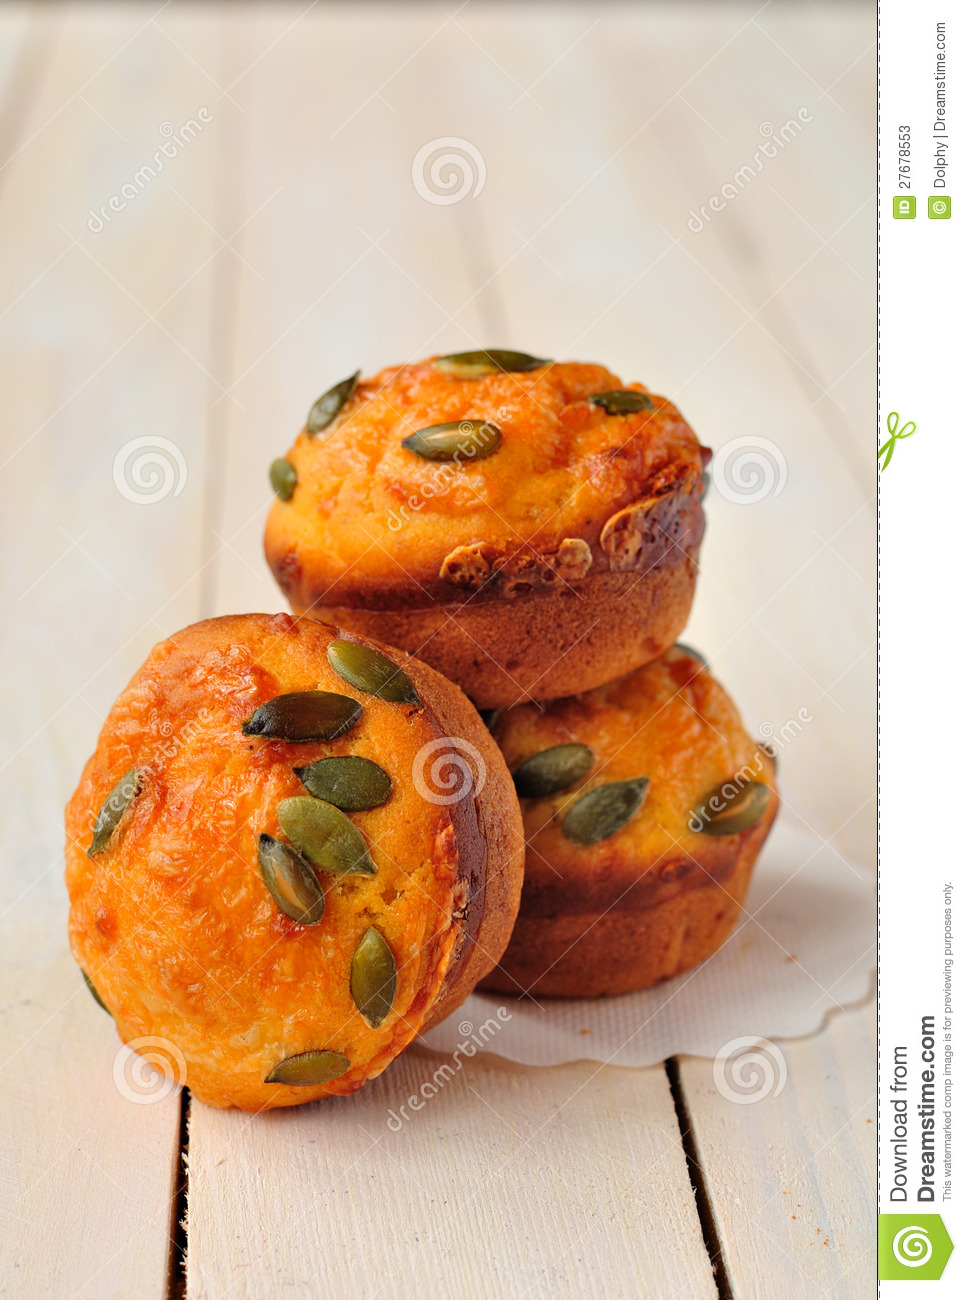 Pumpkin And Cheese Muffins Stock Photos - Image: 27678553